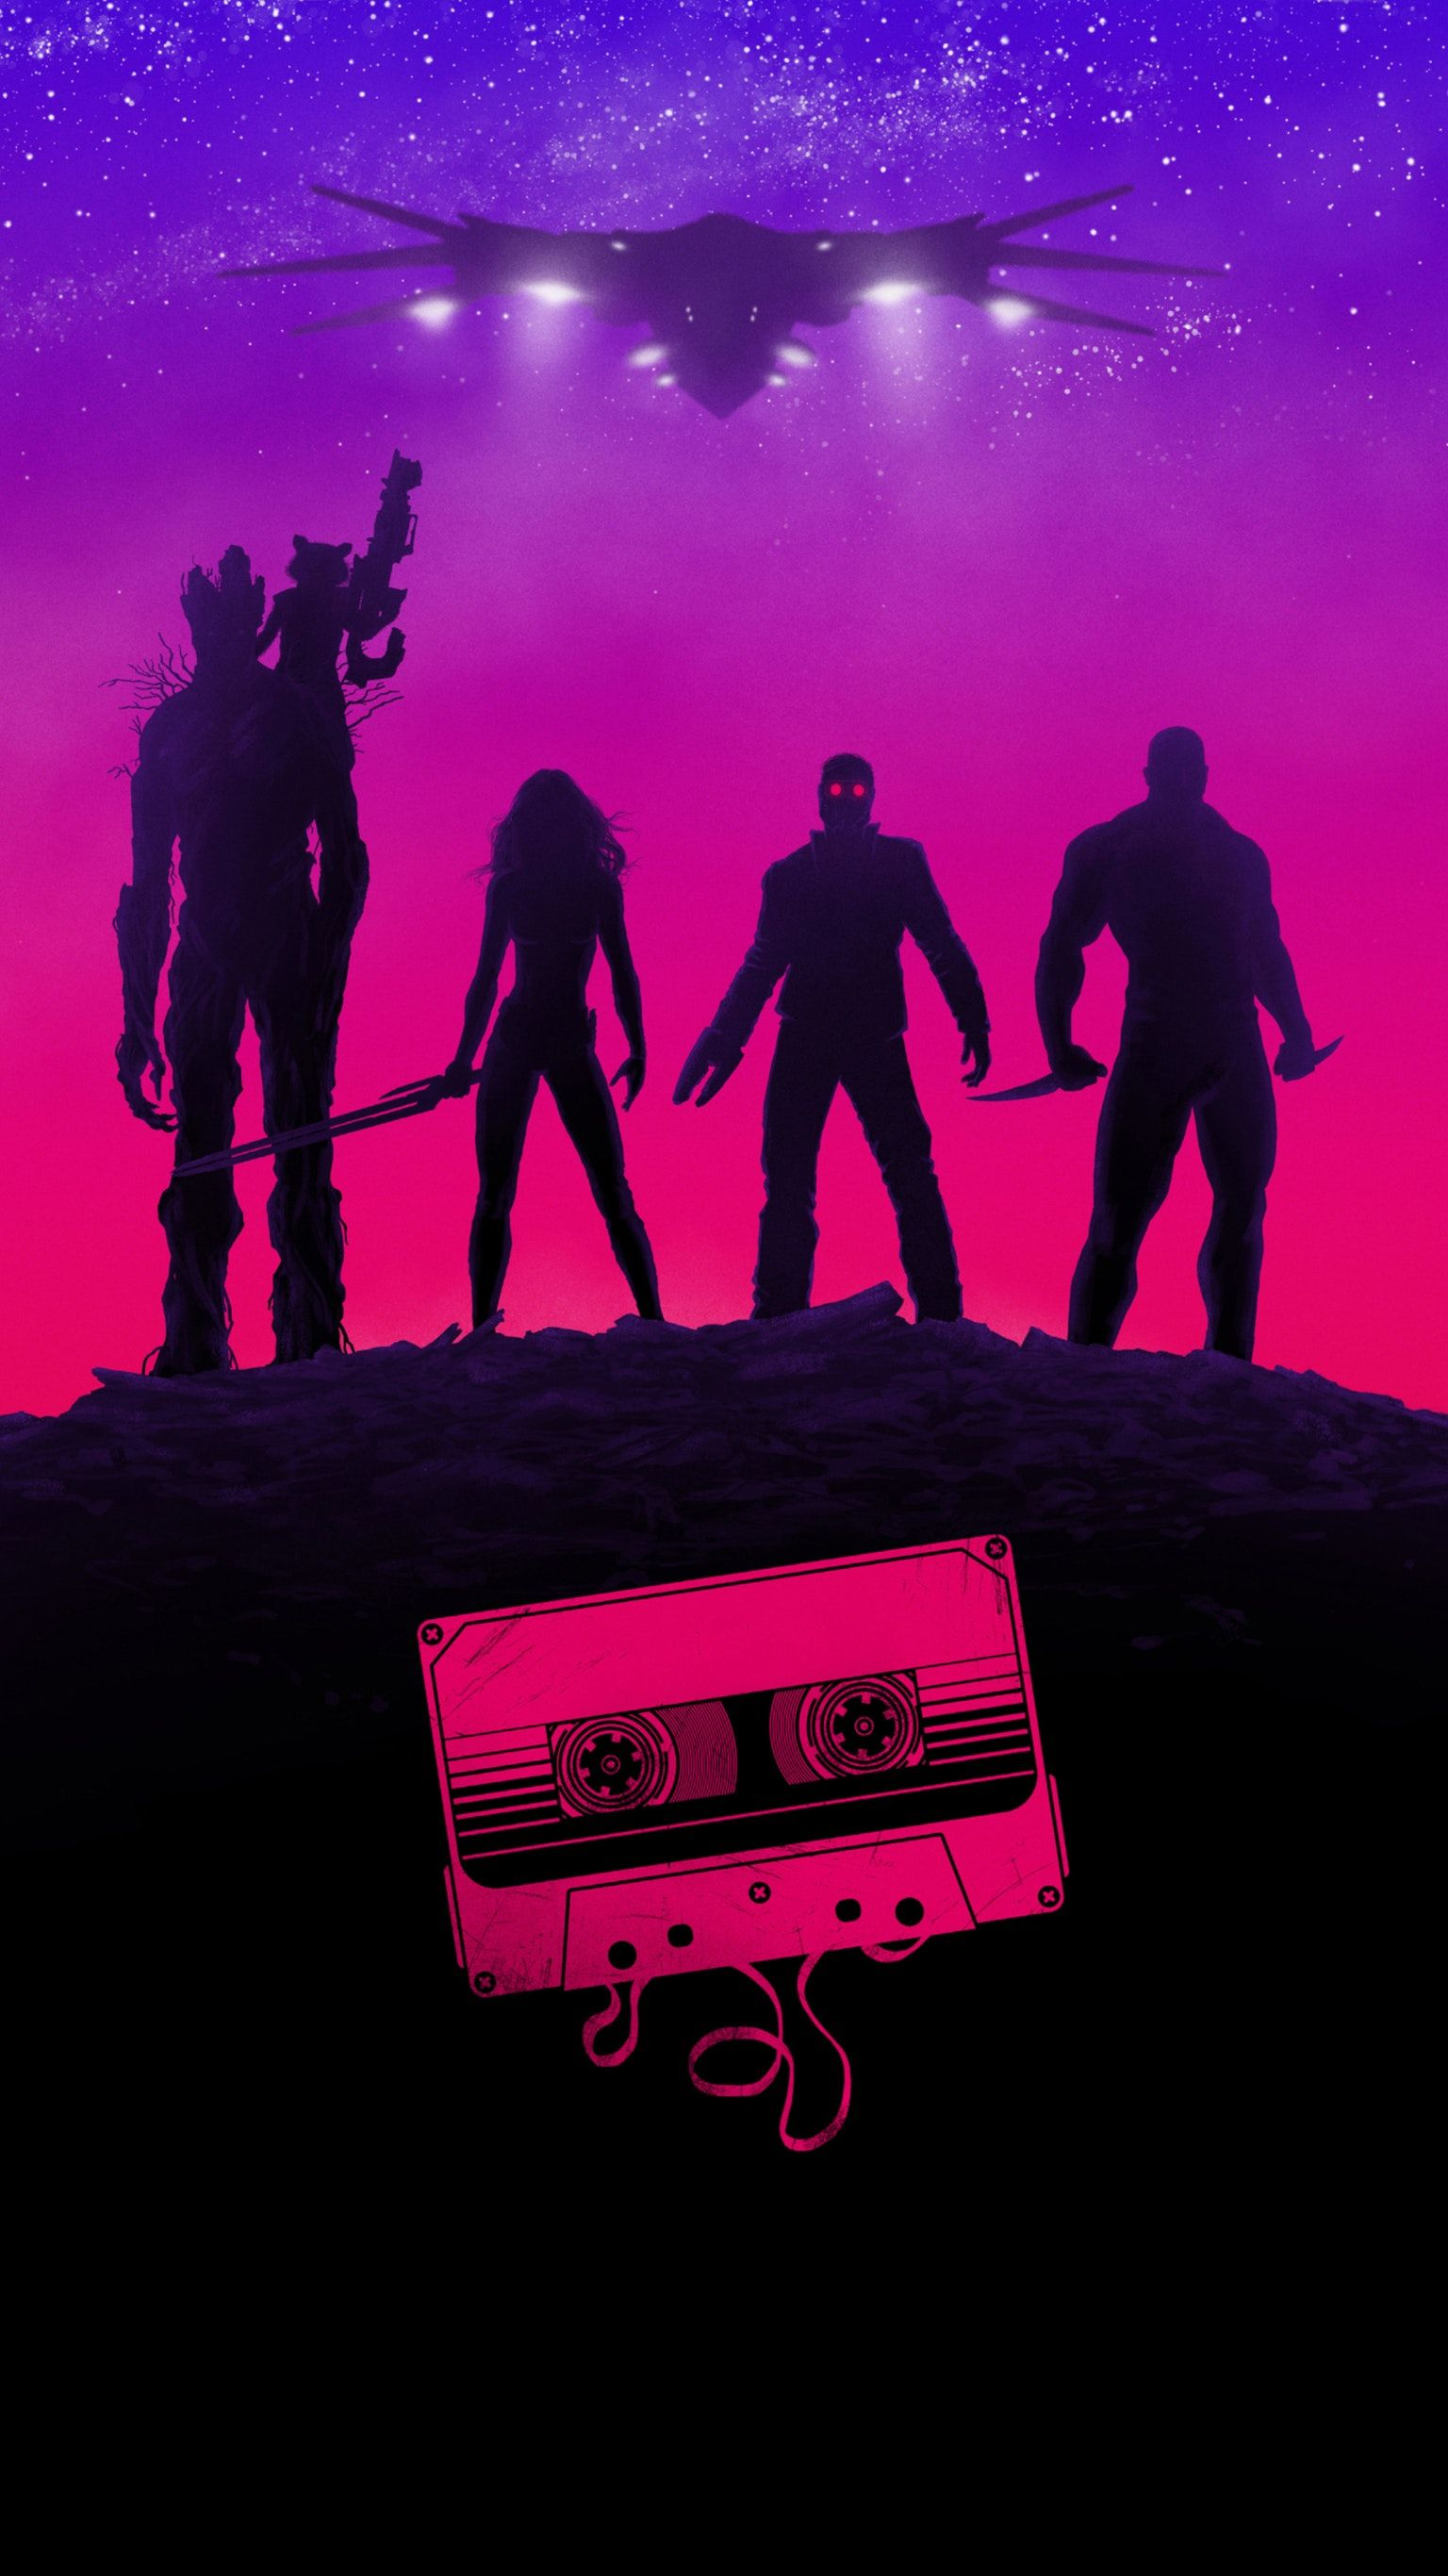 Guardians Of The Galaxy 2014 Phone Wallpaper Moviemania Galaxy Poster Galaxy Movie Guardians Of The Galaxy